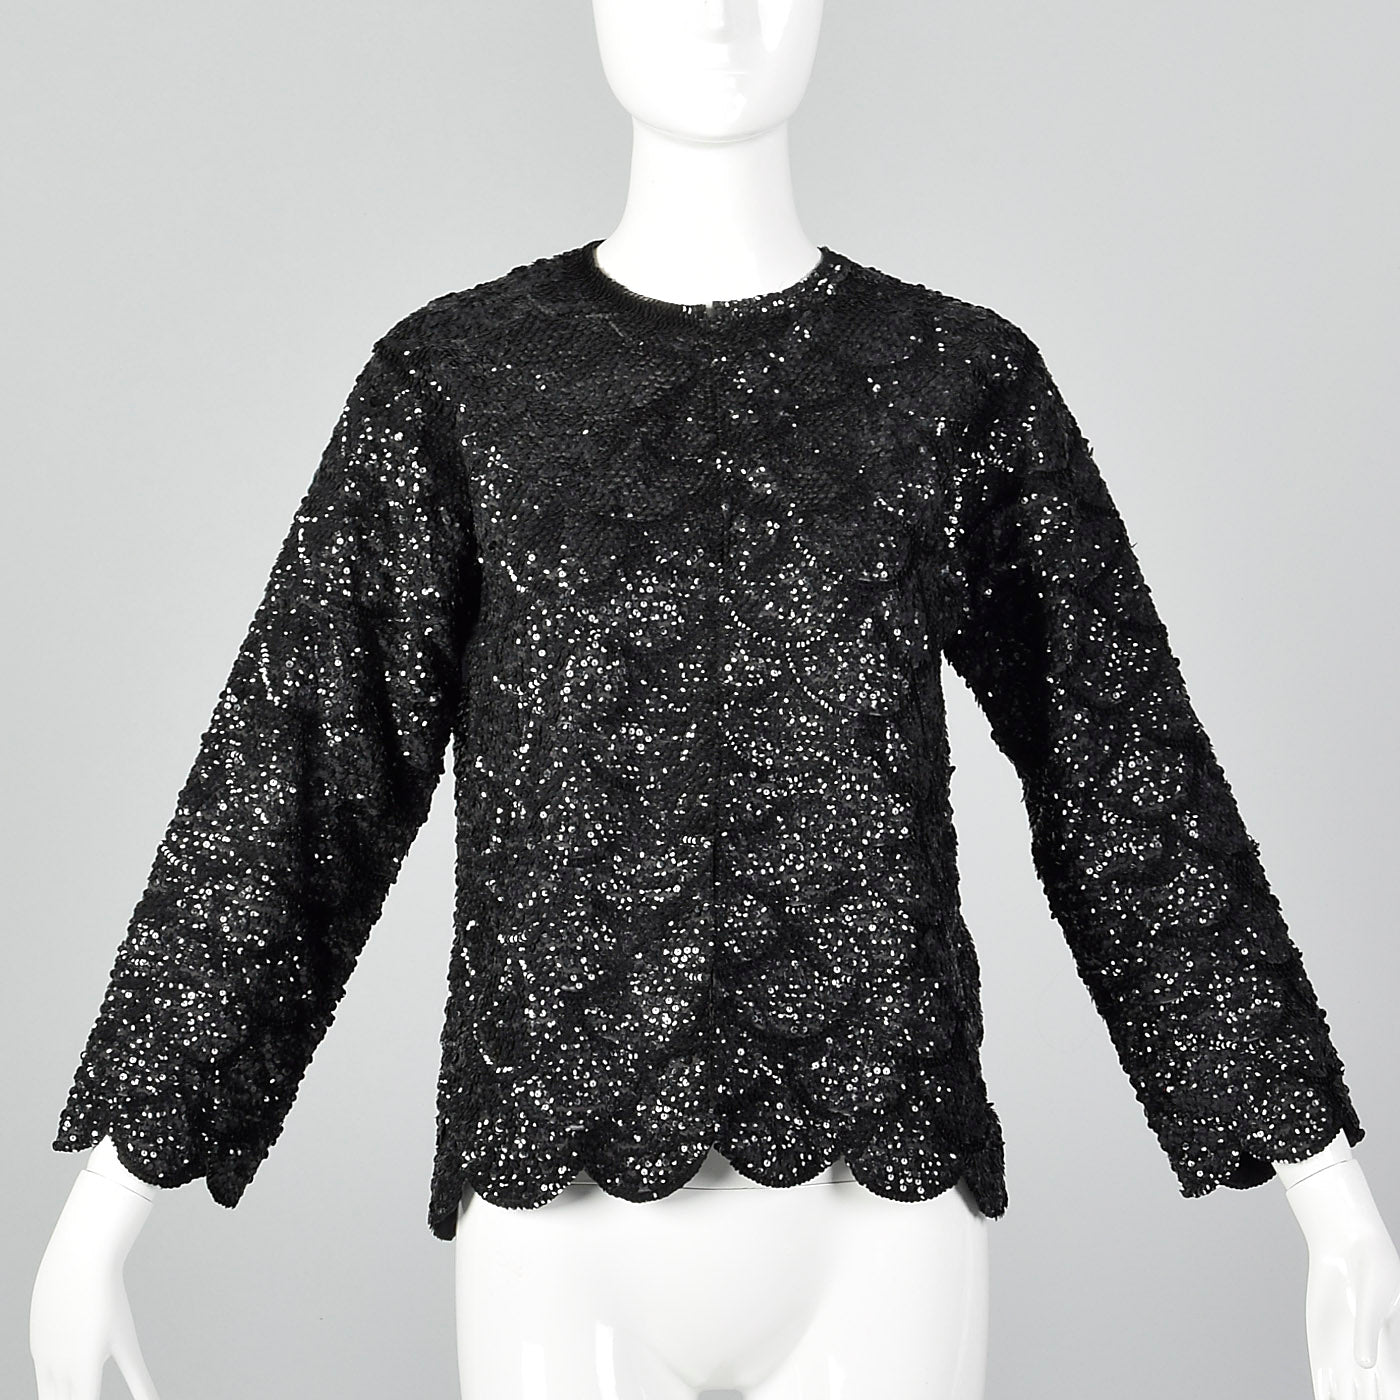 1960s Black Sequin Top with Scalloped Hem